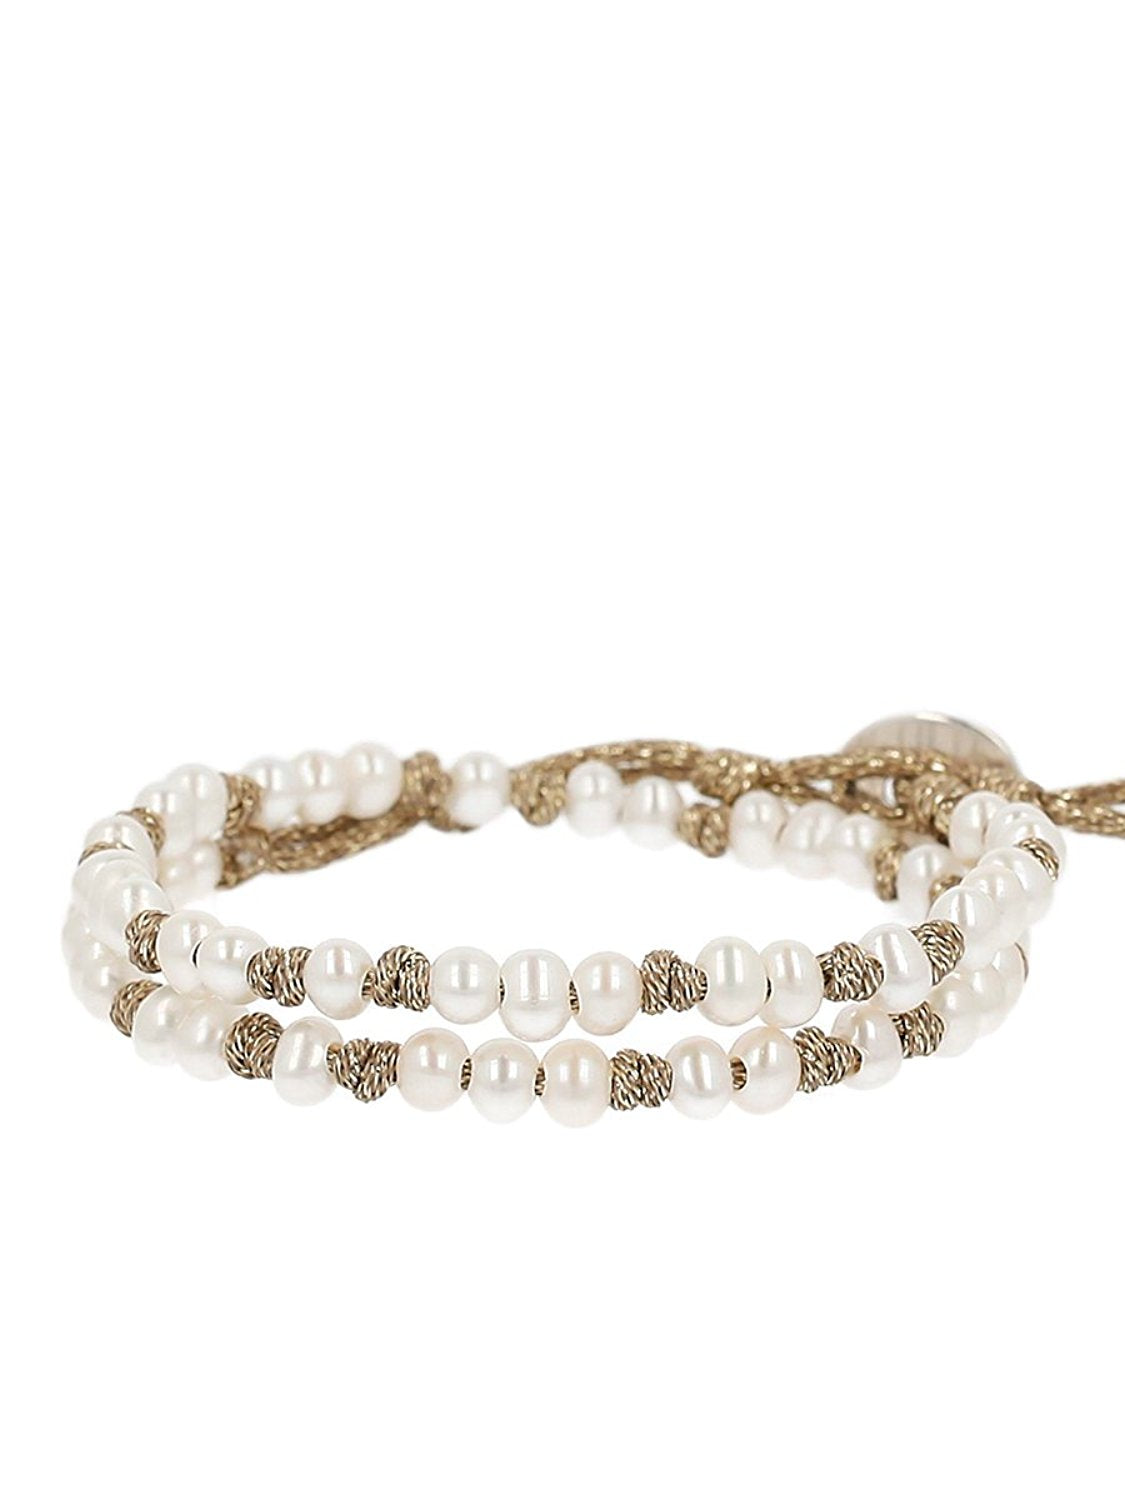 Chan Luu White Freshwater Cultured Pearls On A Knotted Gold Tone Metallic Wrap Bracelet